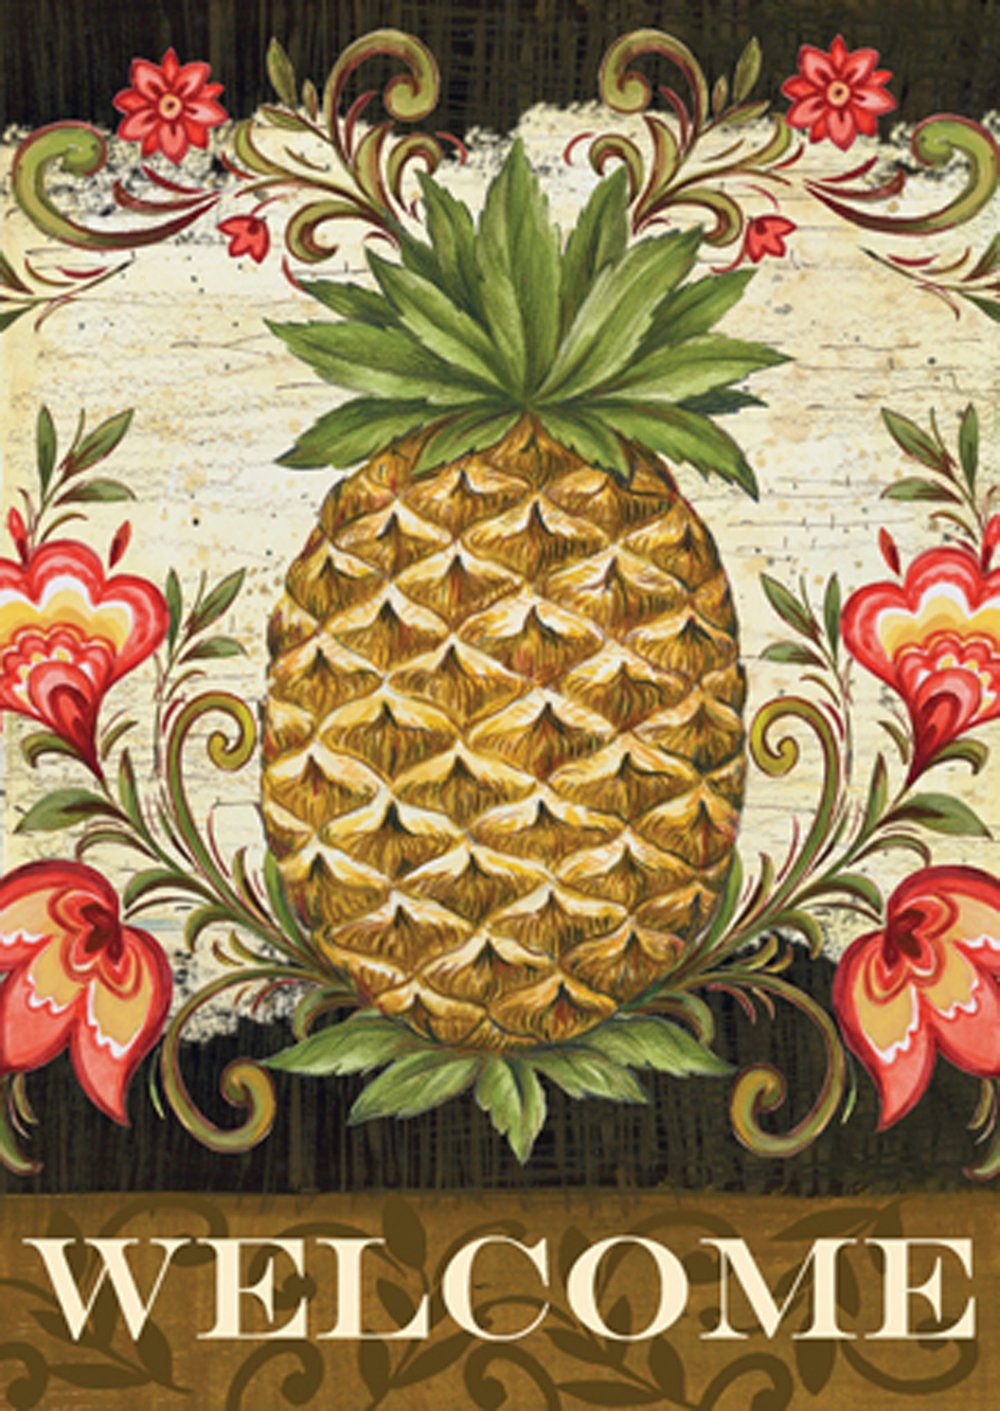 "Toland Home Garden 101163 Pineapple & Scrolls 28 x 40 Inch Decorative, House Flag (28"" x 40""), Double Sided"